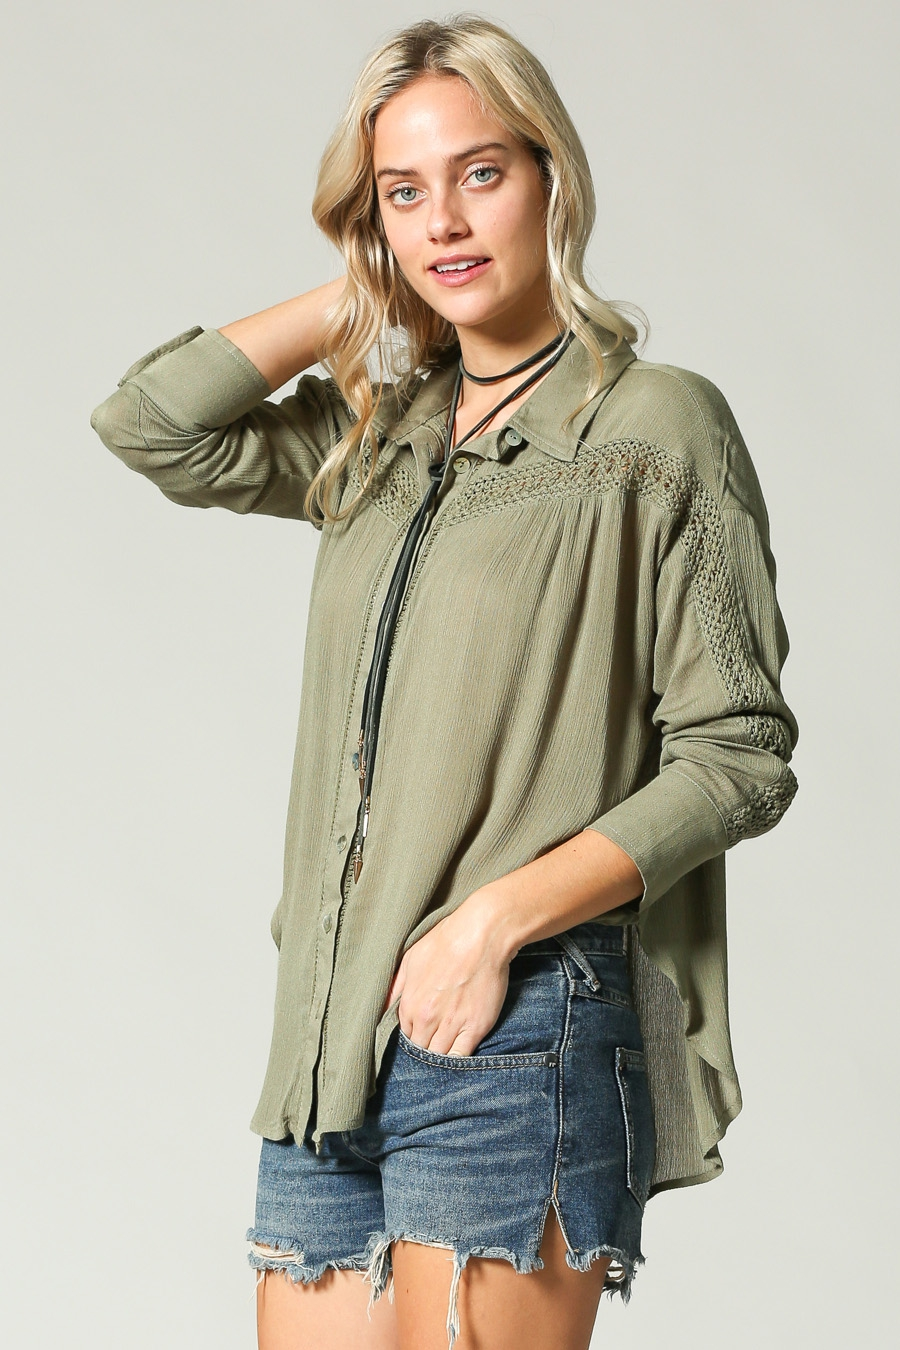 OPEN LACE TRIM DETAILED SHIRT - orangeshine.com